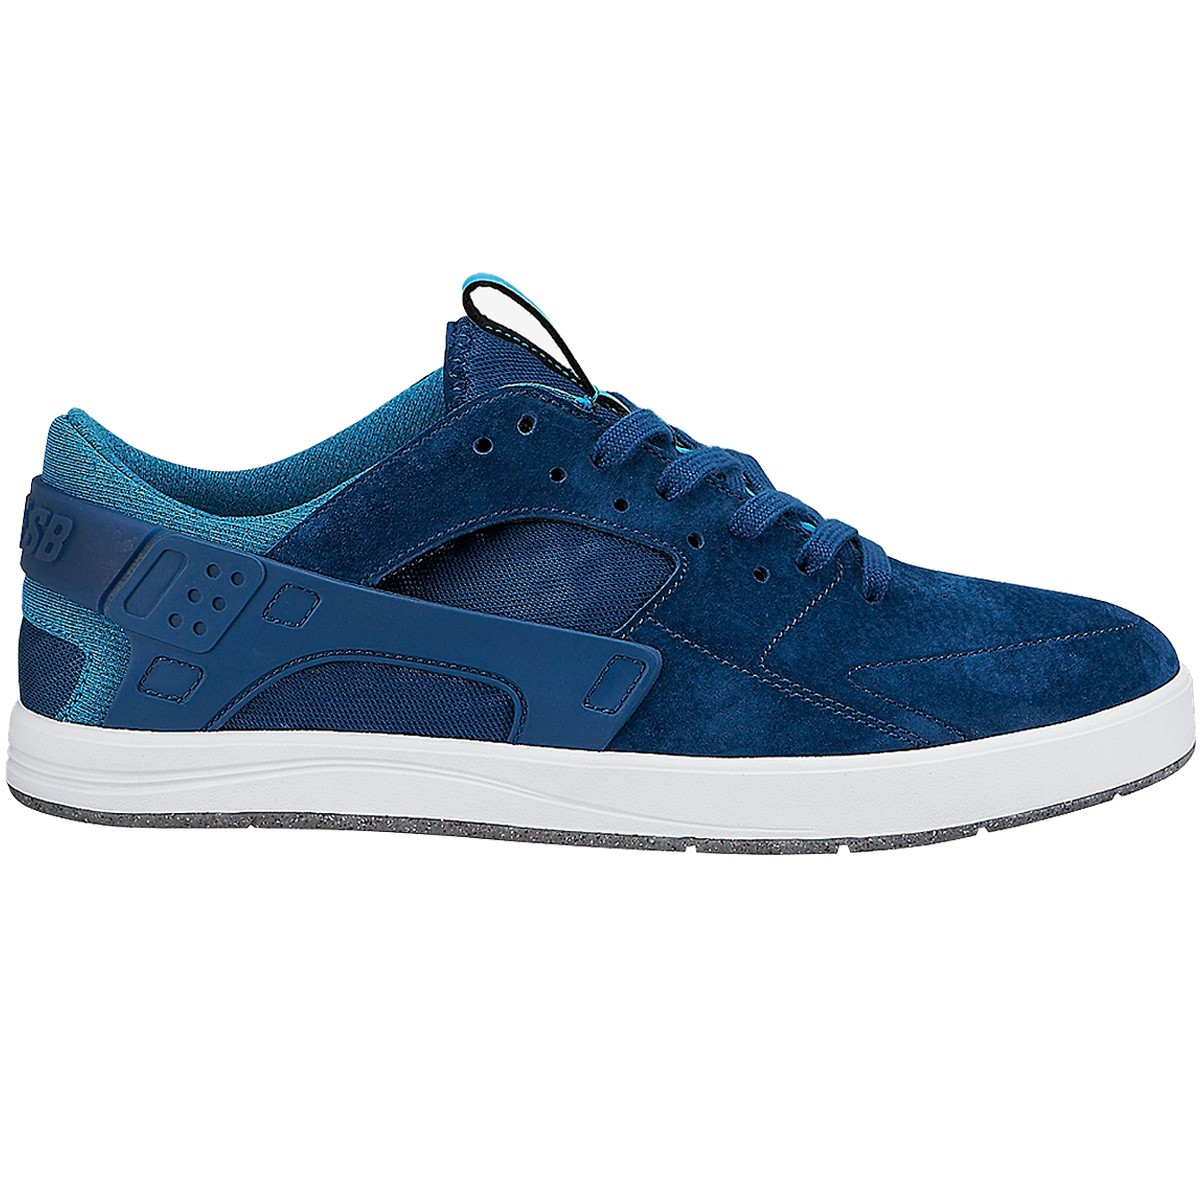 8a252512f70e Nike Eric Koston Huarache Shoes - Blue Force White Blue Lagoon - 14.0